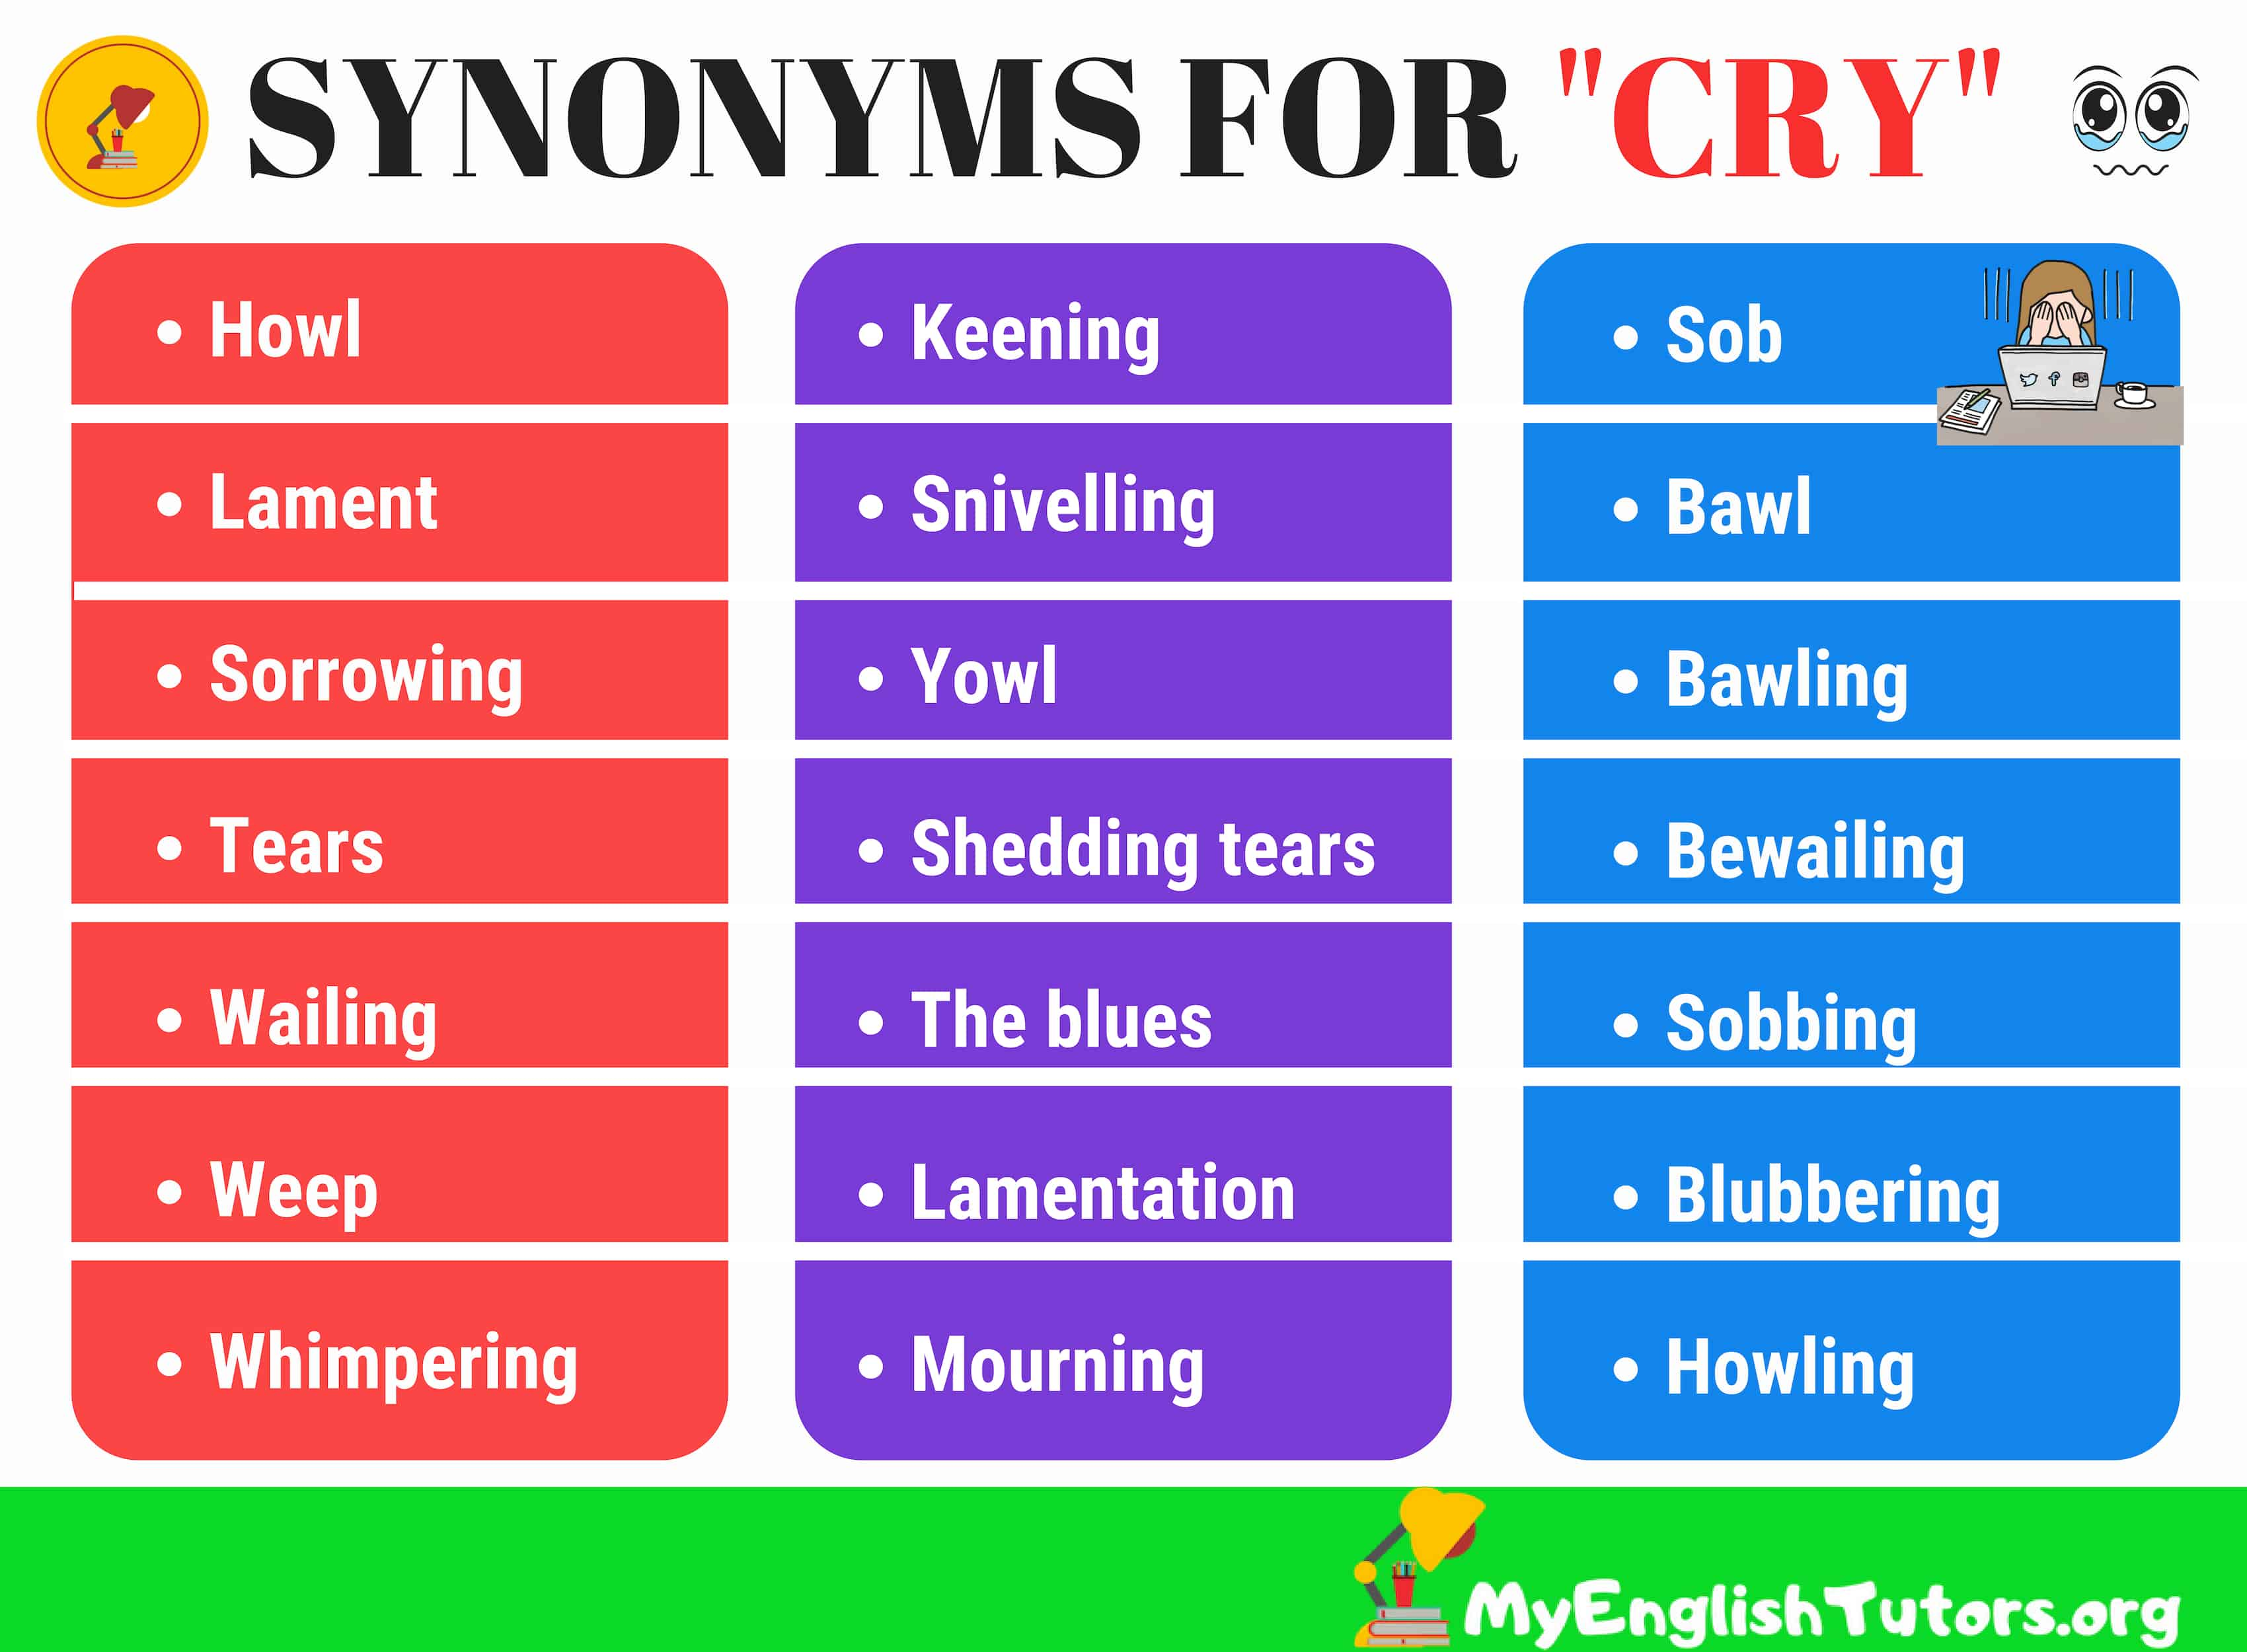 CRY Synonyms: Other Words for CRY